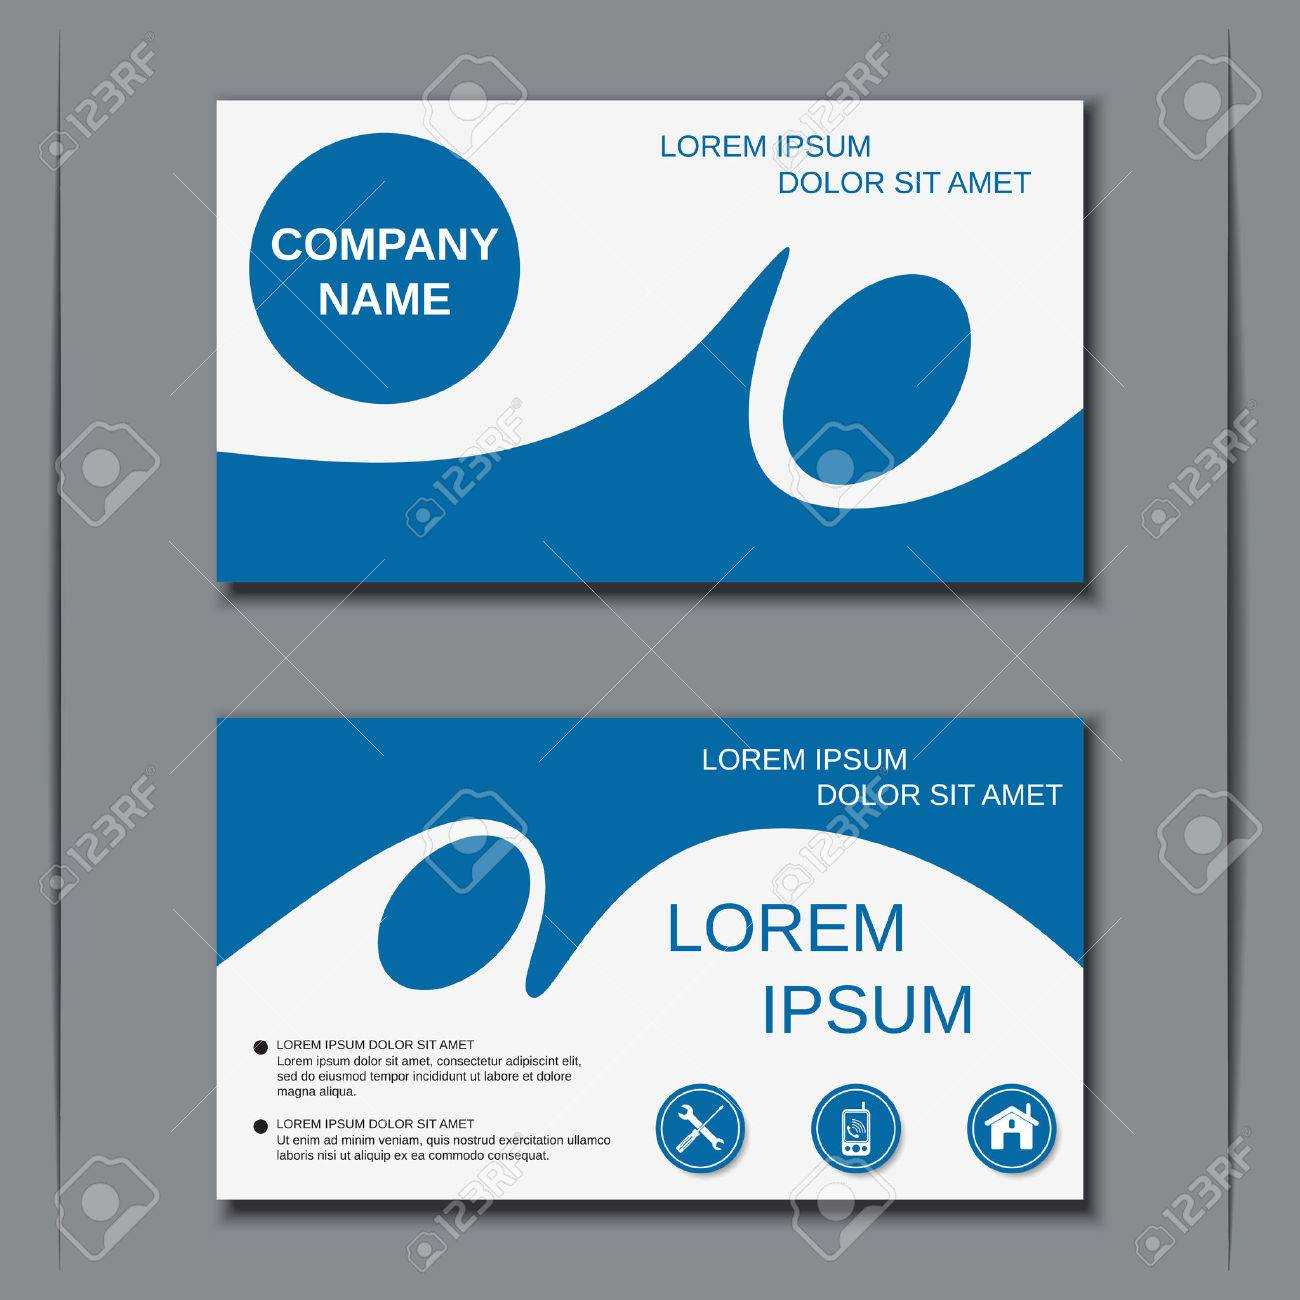 Modern business visiting card design template royalty free cliparts modern business visiting card design template stock vector 46902797 fbccfo Choice Image